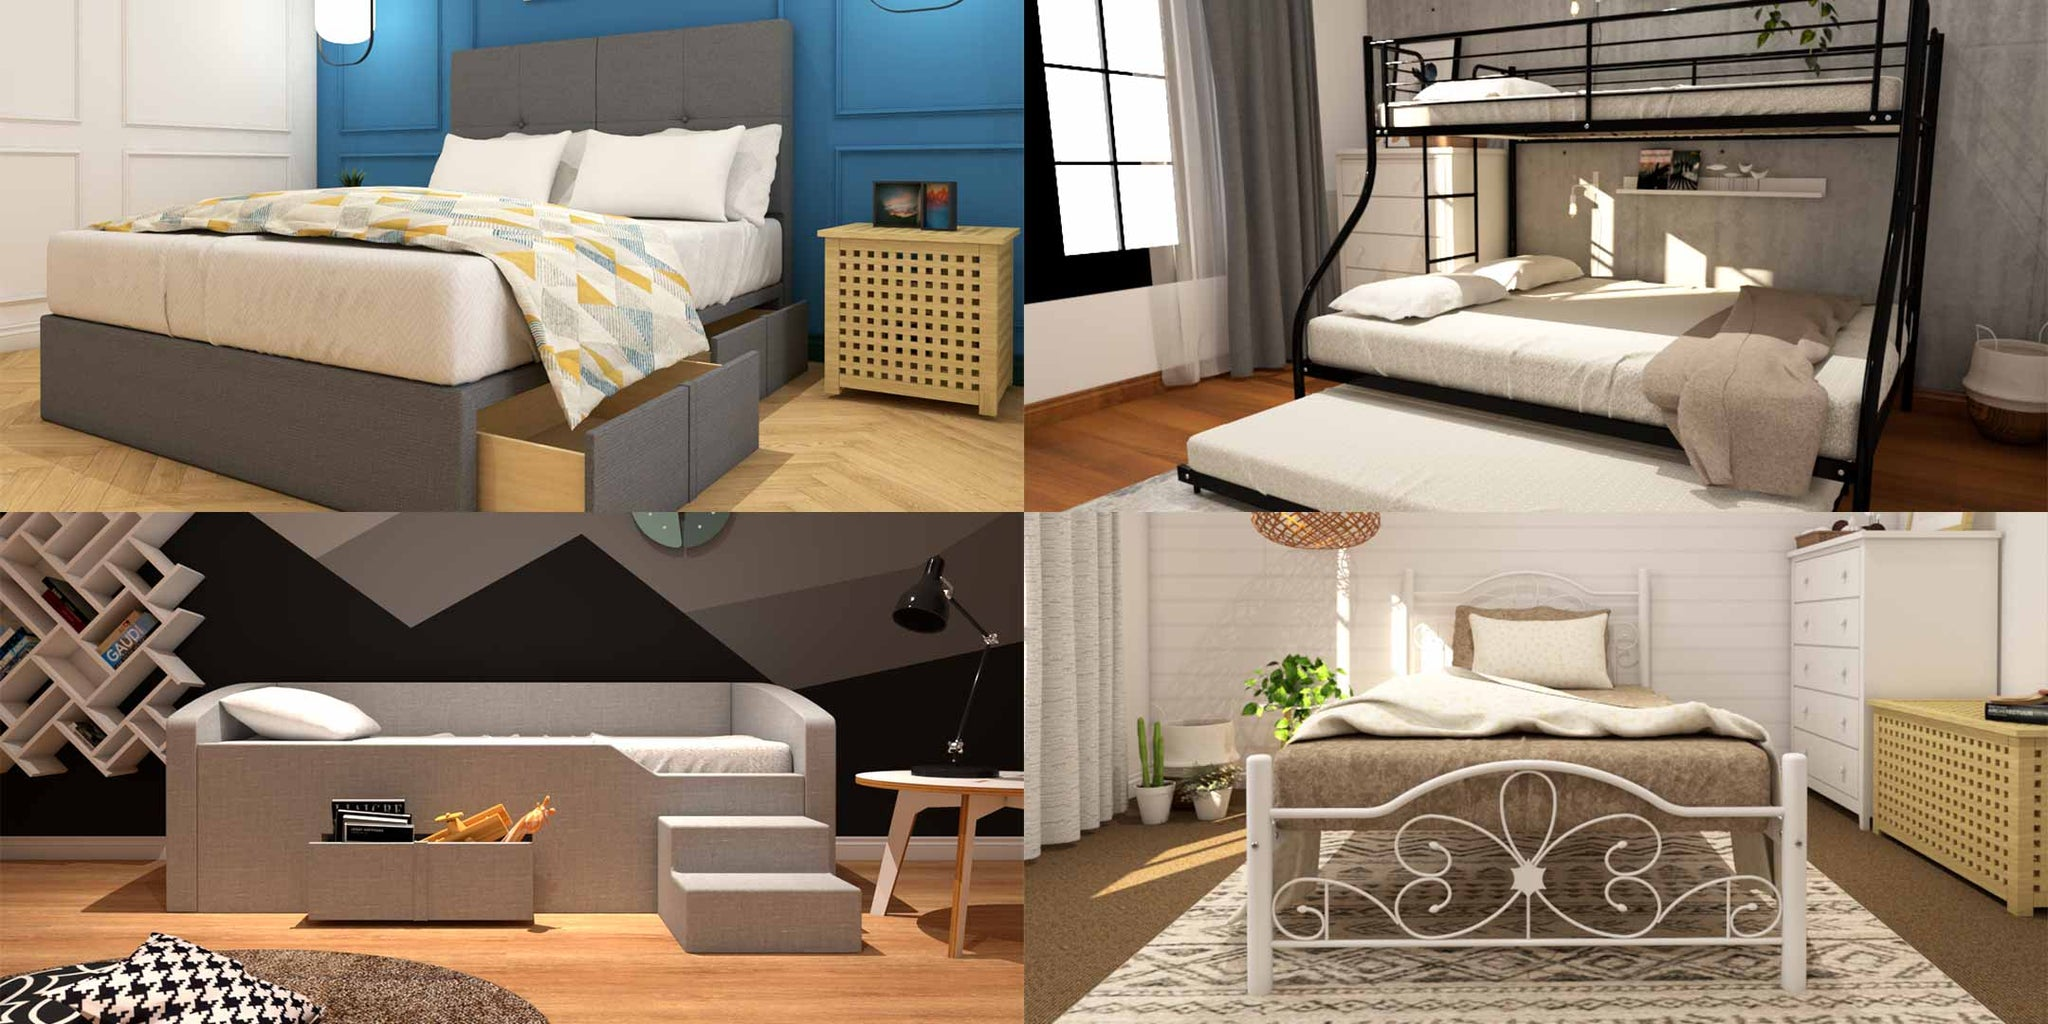 Different Styles of Bed frame - Storage Bed, Bunk Bed, Daybed, Metal bed